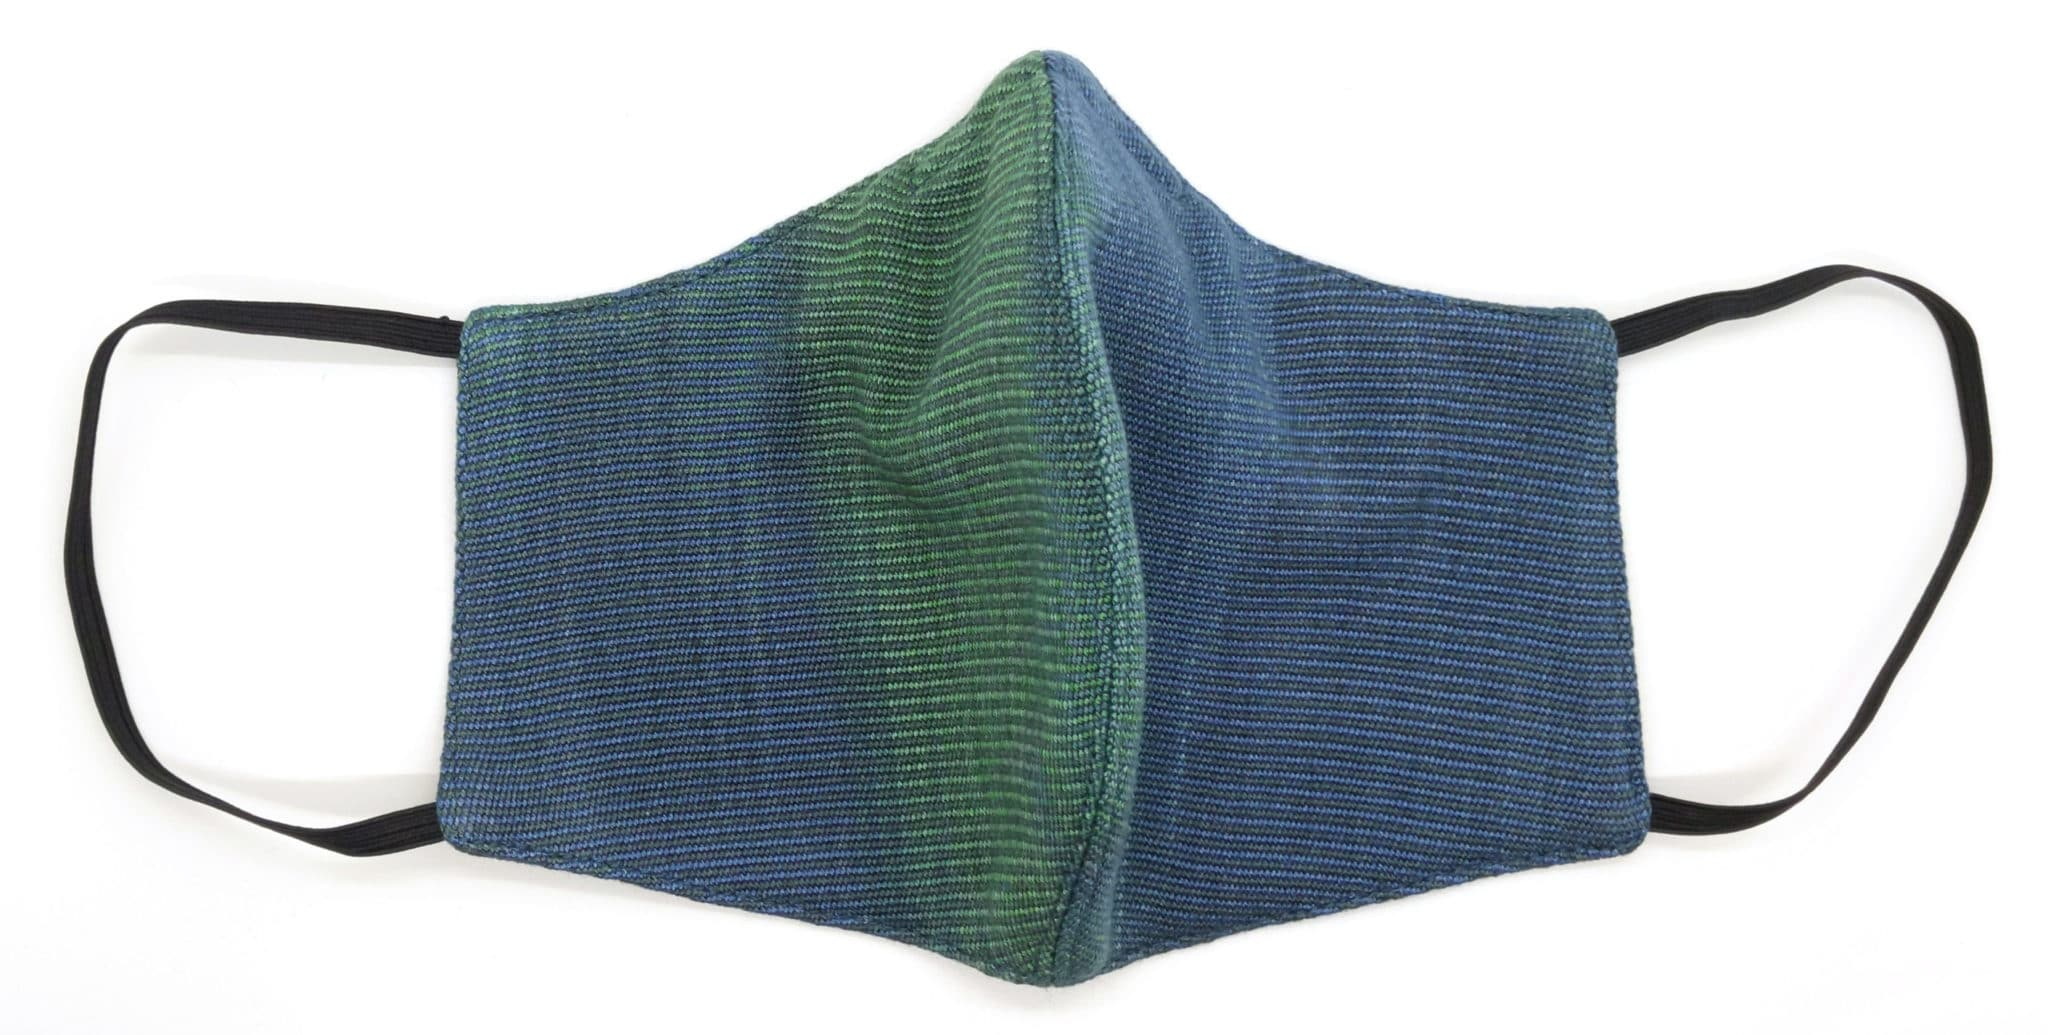 Handwoven Lightweight Bamboo Face Mask with Metal at Bridge of Nose - Sapphire and Emerald